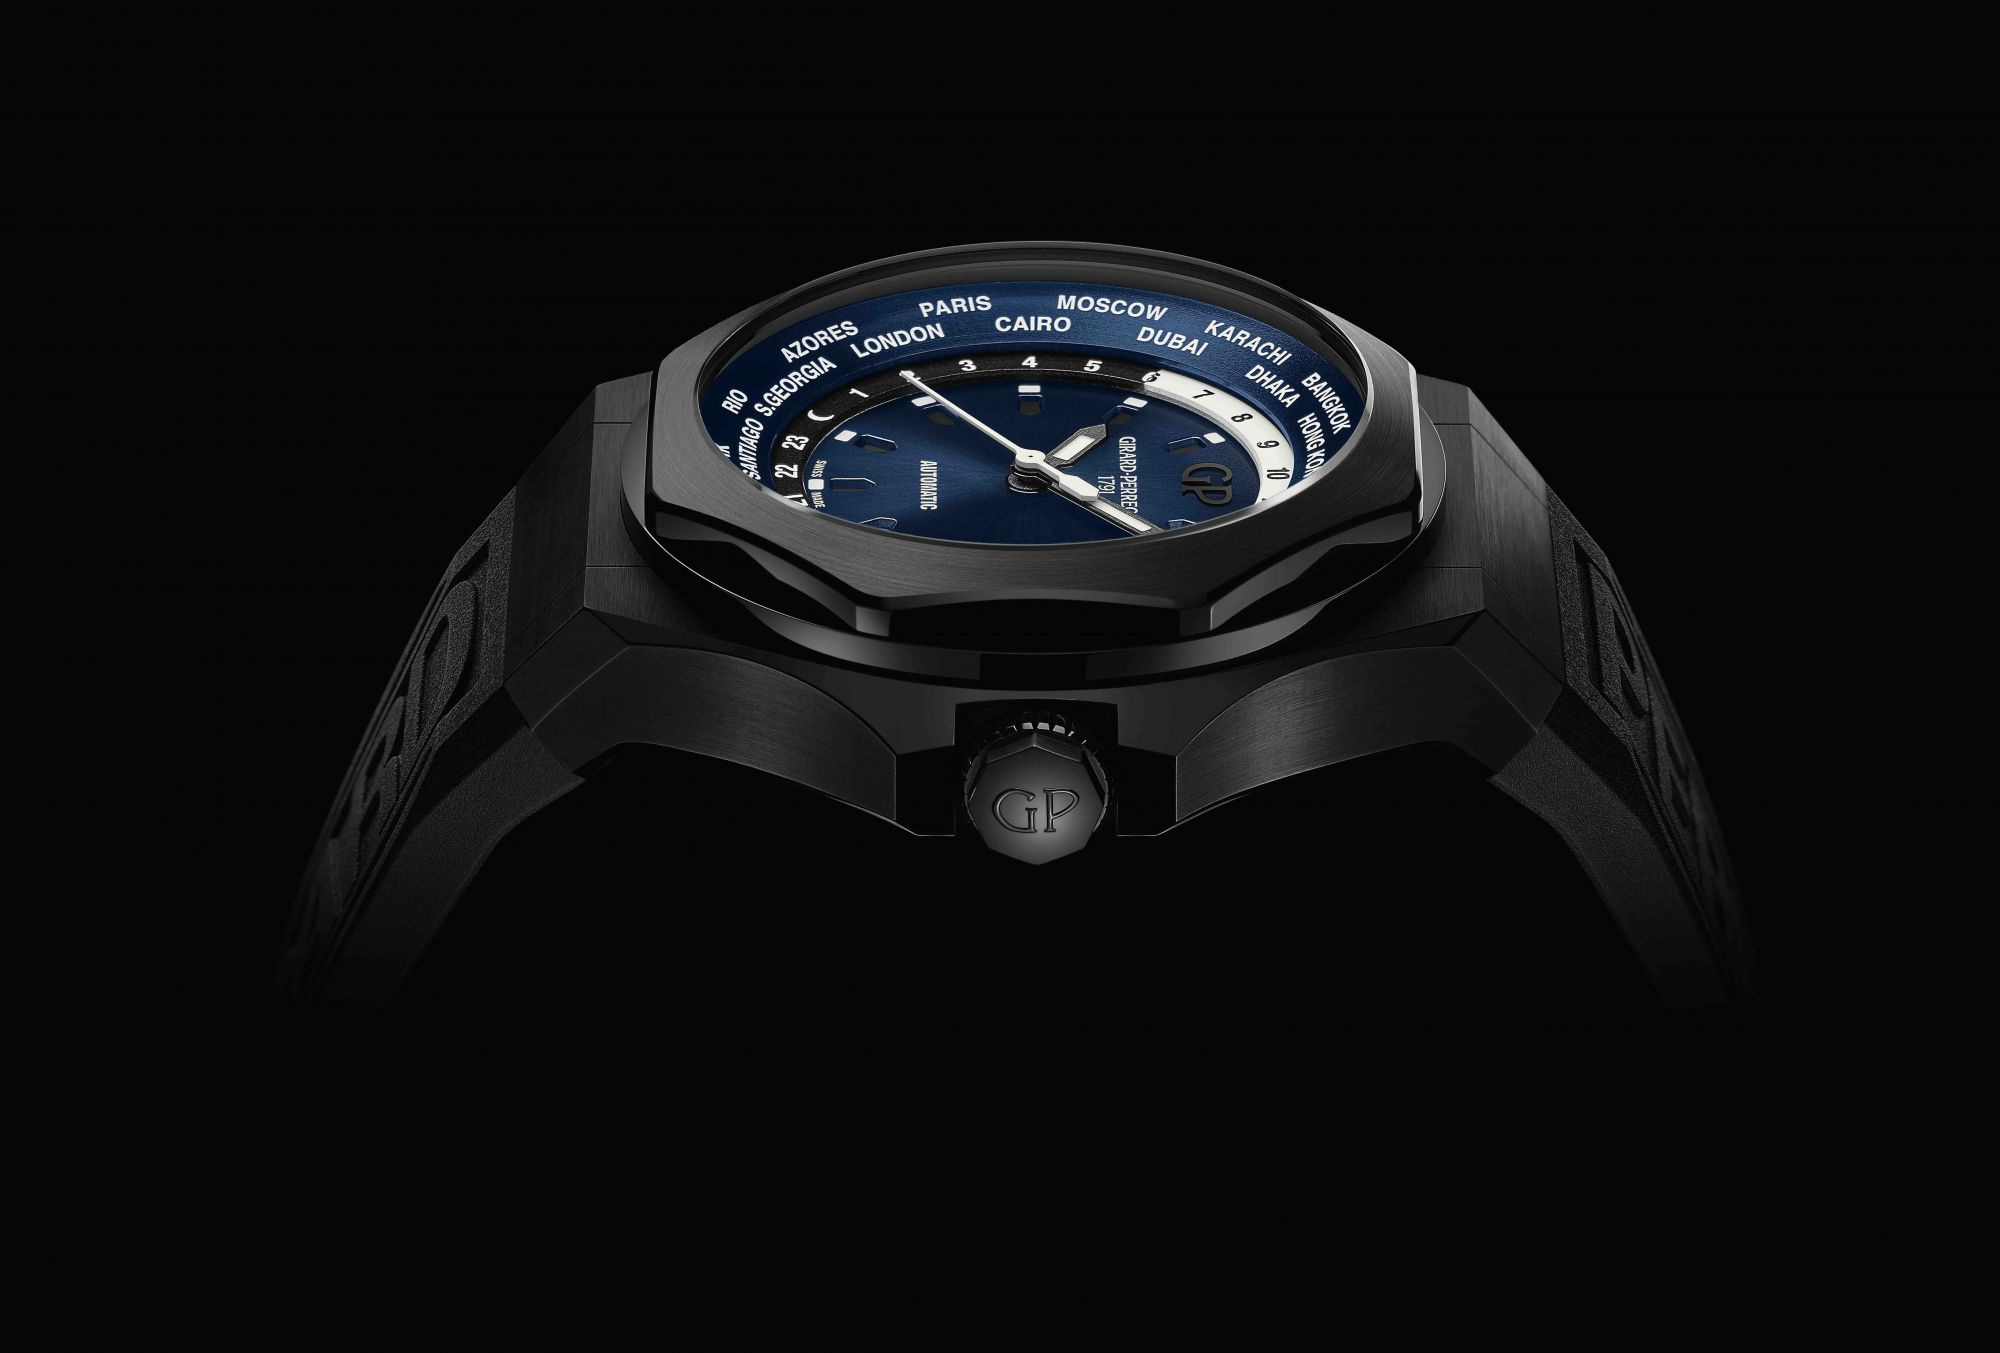 The Girard‑Perregaux Laureato Absolute watch is dark and handsome, and boasts elements such as a rubber strap injection‑moulded with the brand name